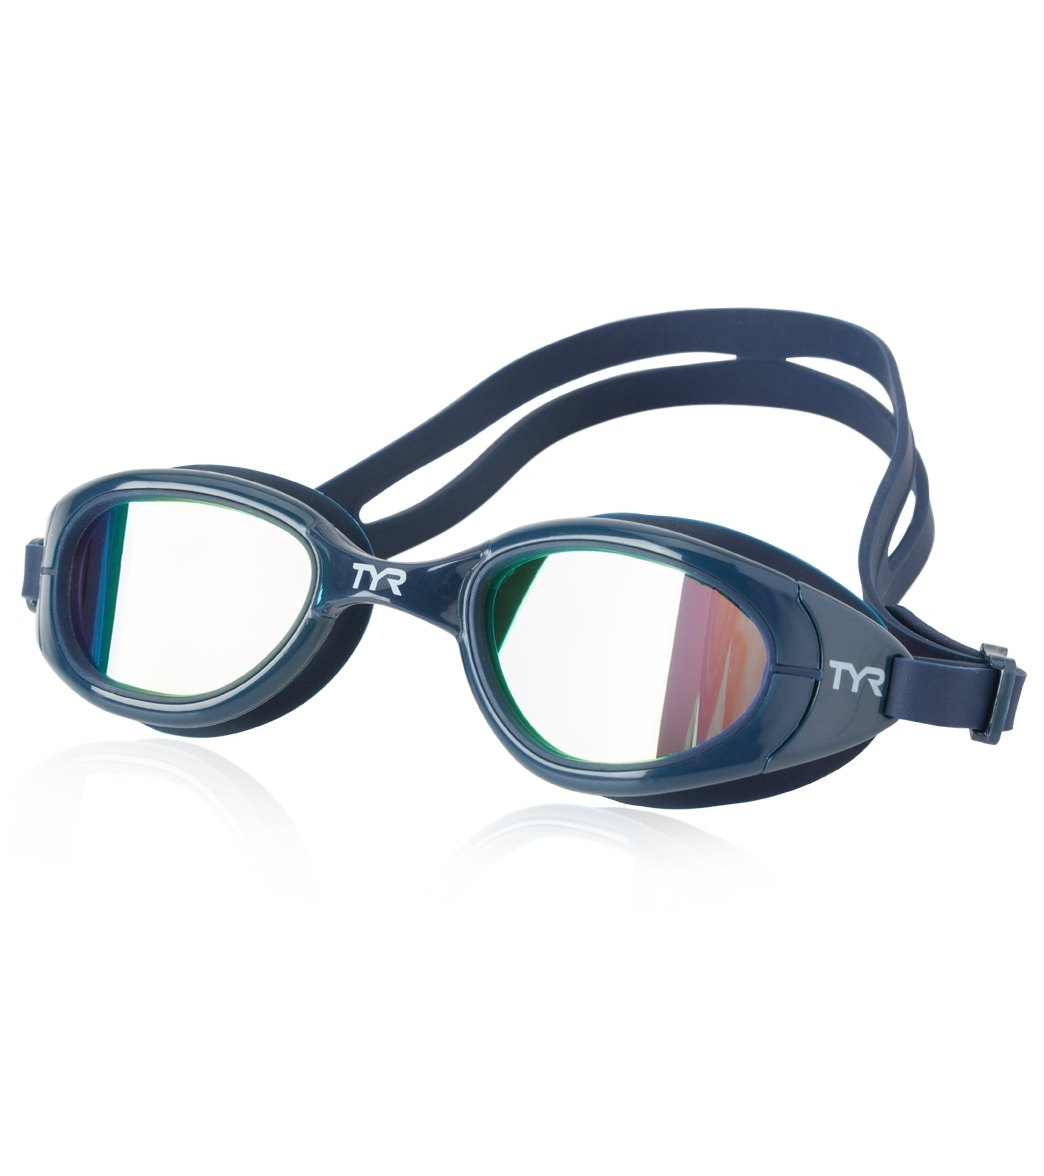 TYR Special Ops 2.0 Swimming Goggles For Beginners